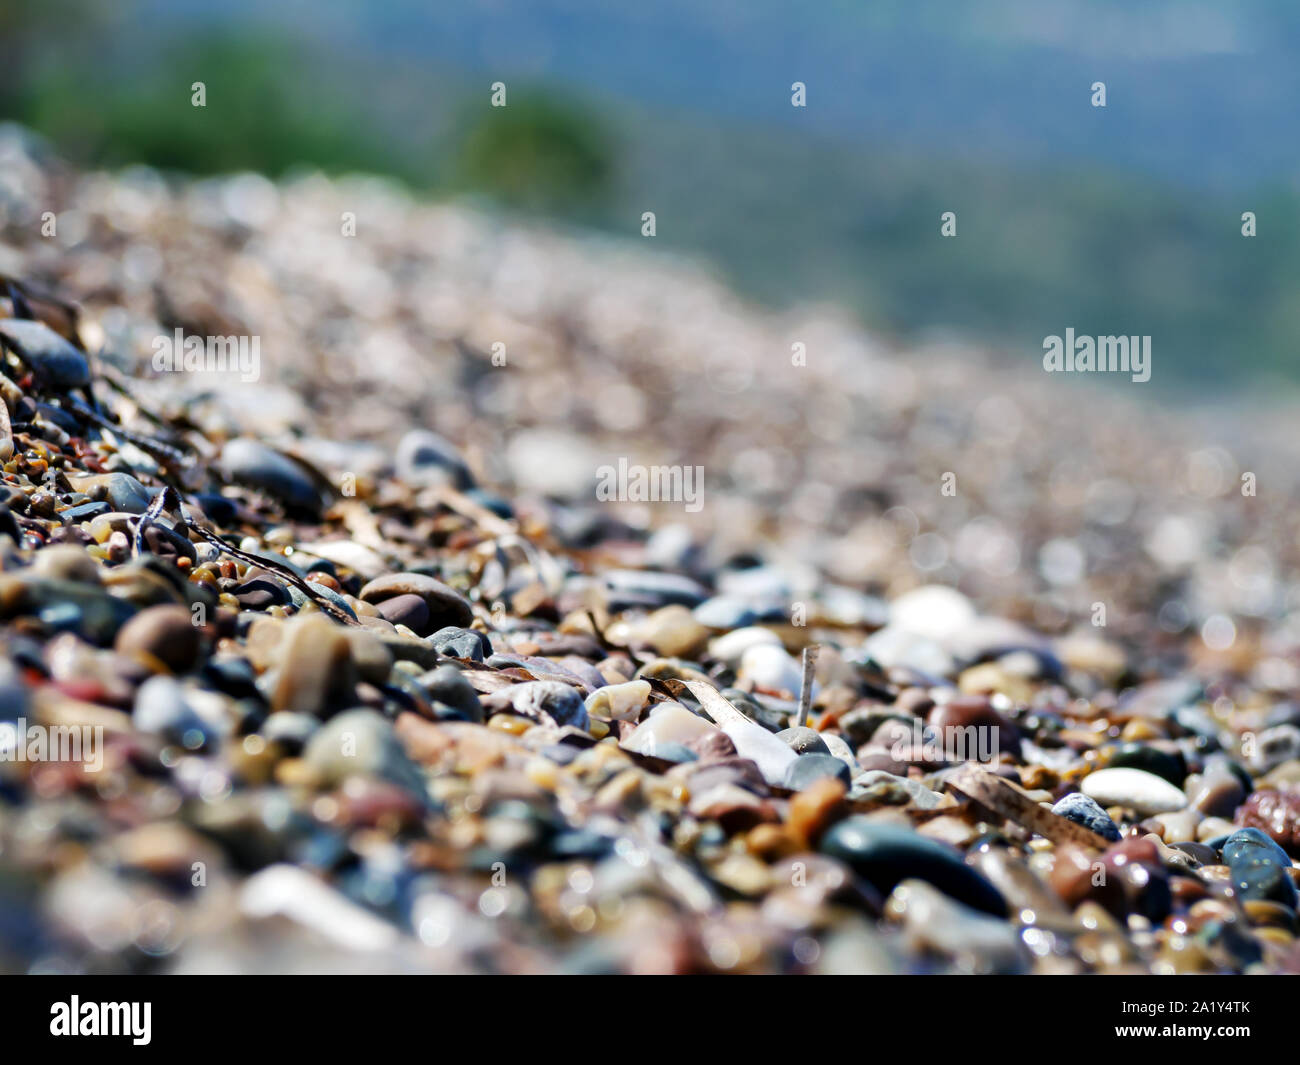 Pattern with turquoise sea stones beach on for design. Beautiful gravel background. Stone texture. Horizon sea water landscape. Image For desktop, wallpapers, banner. Copy space, selective focus Stock Photo